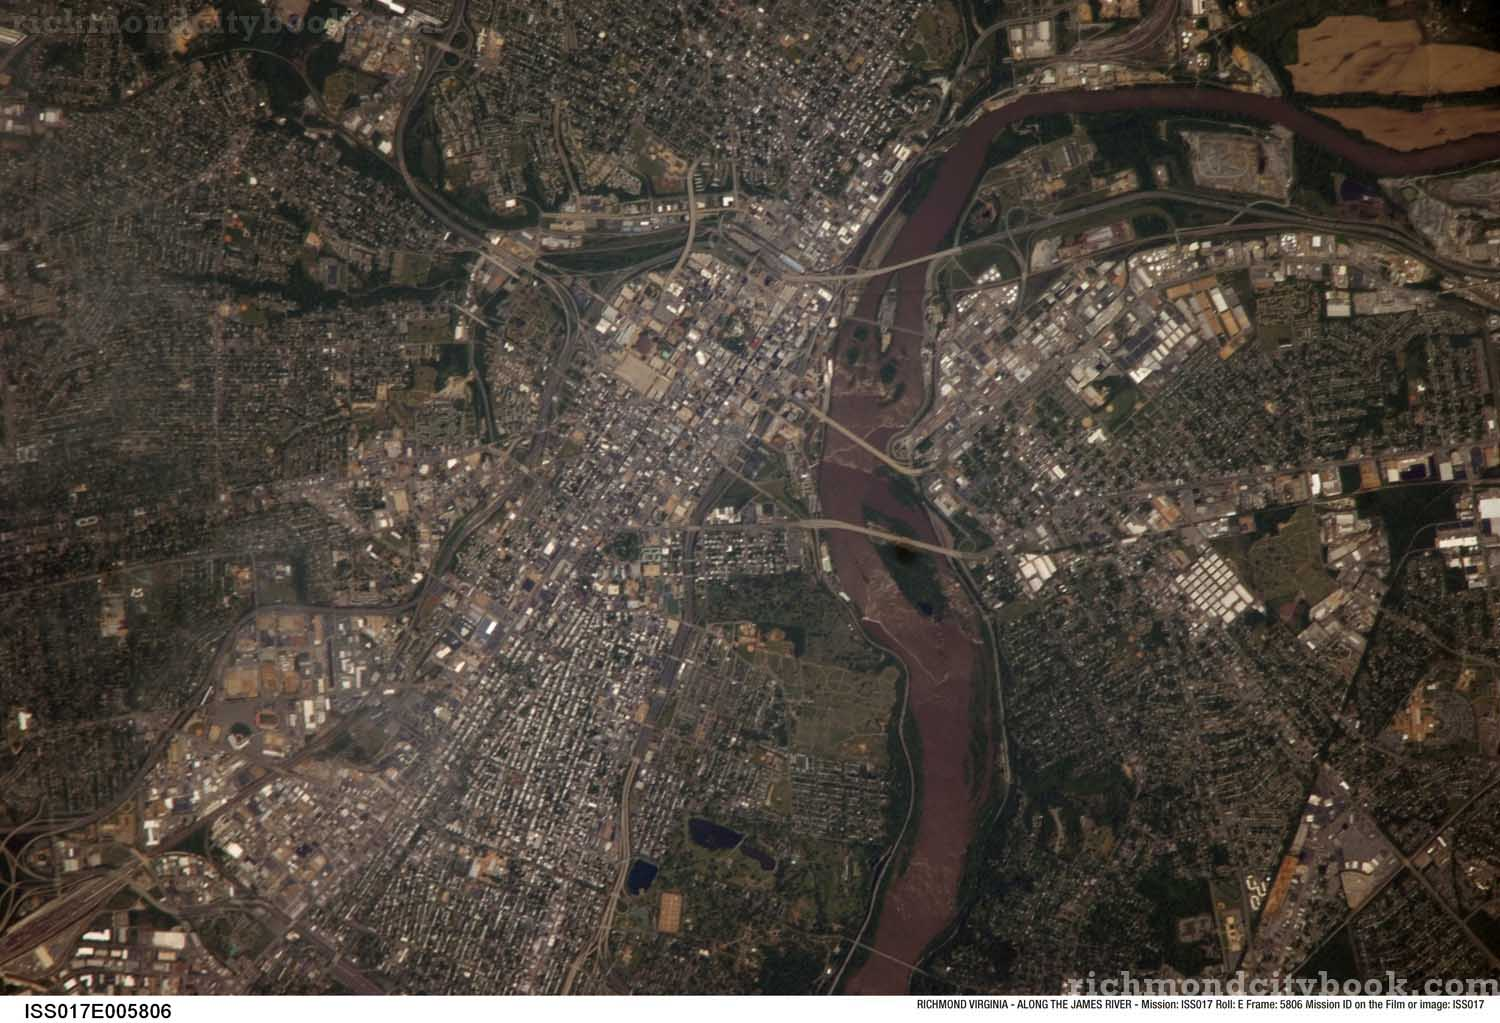 Richmond Virginia Aerial